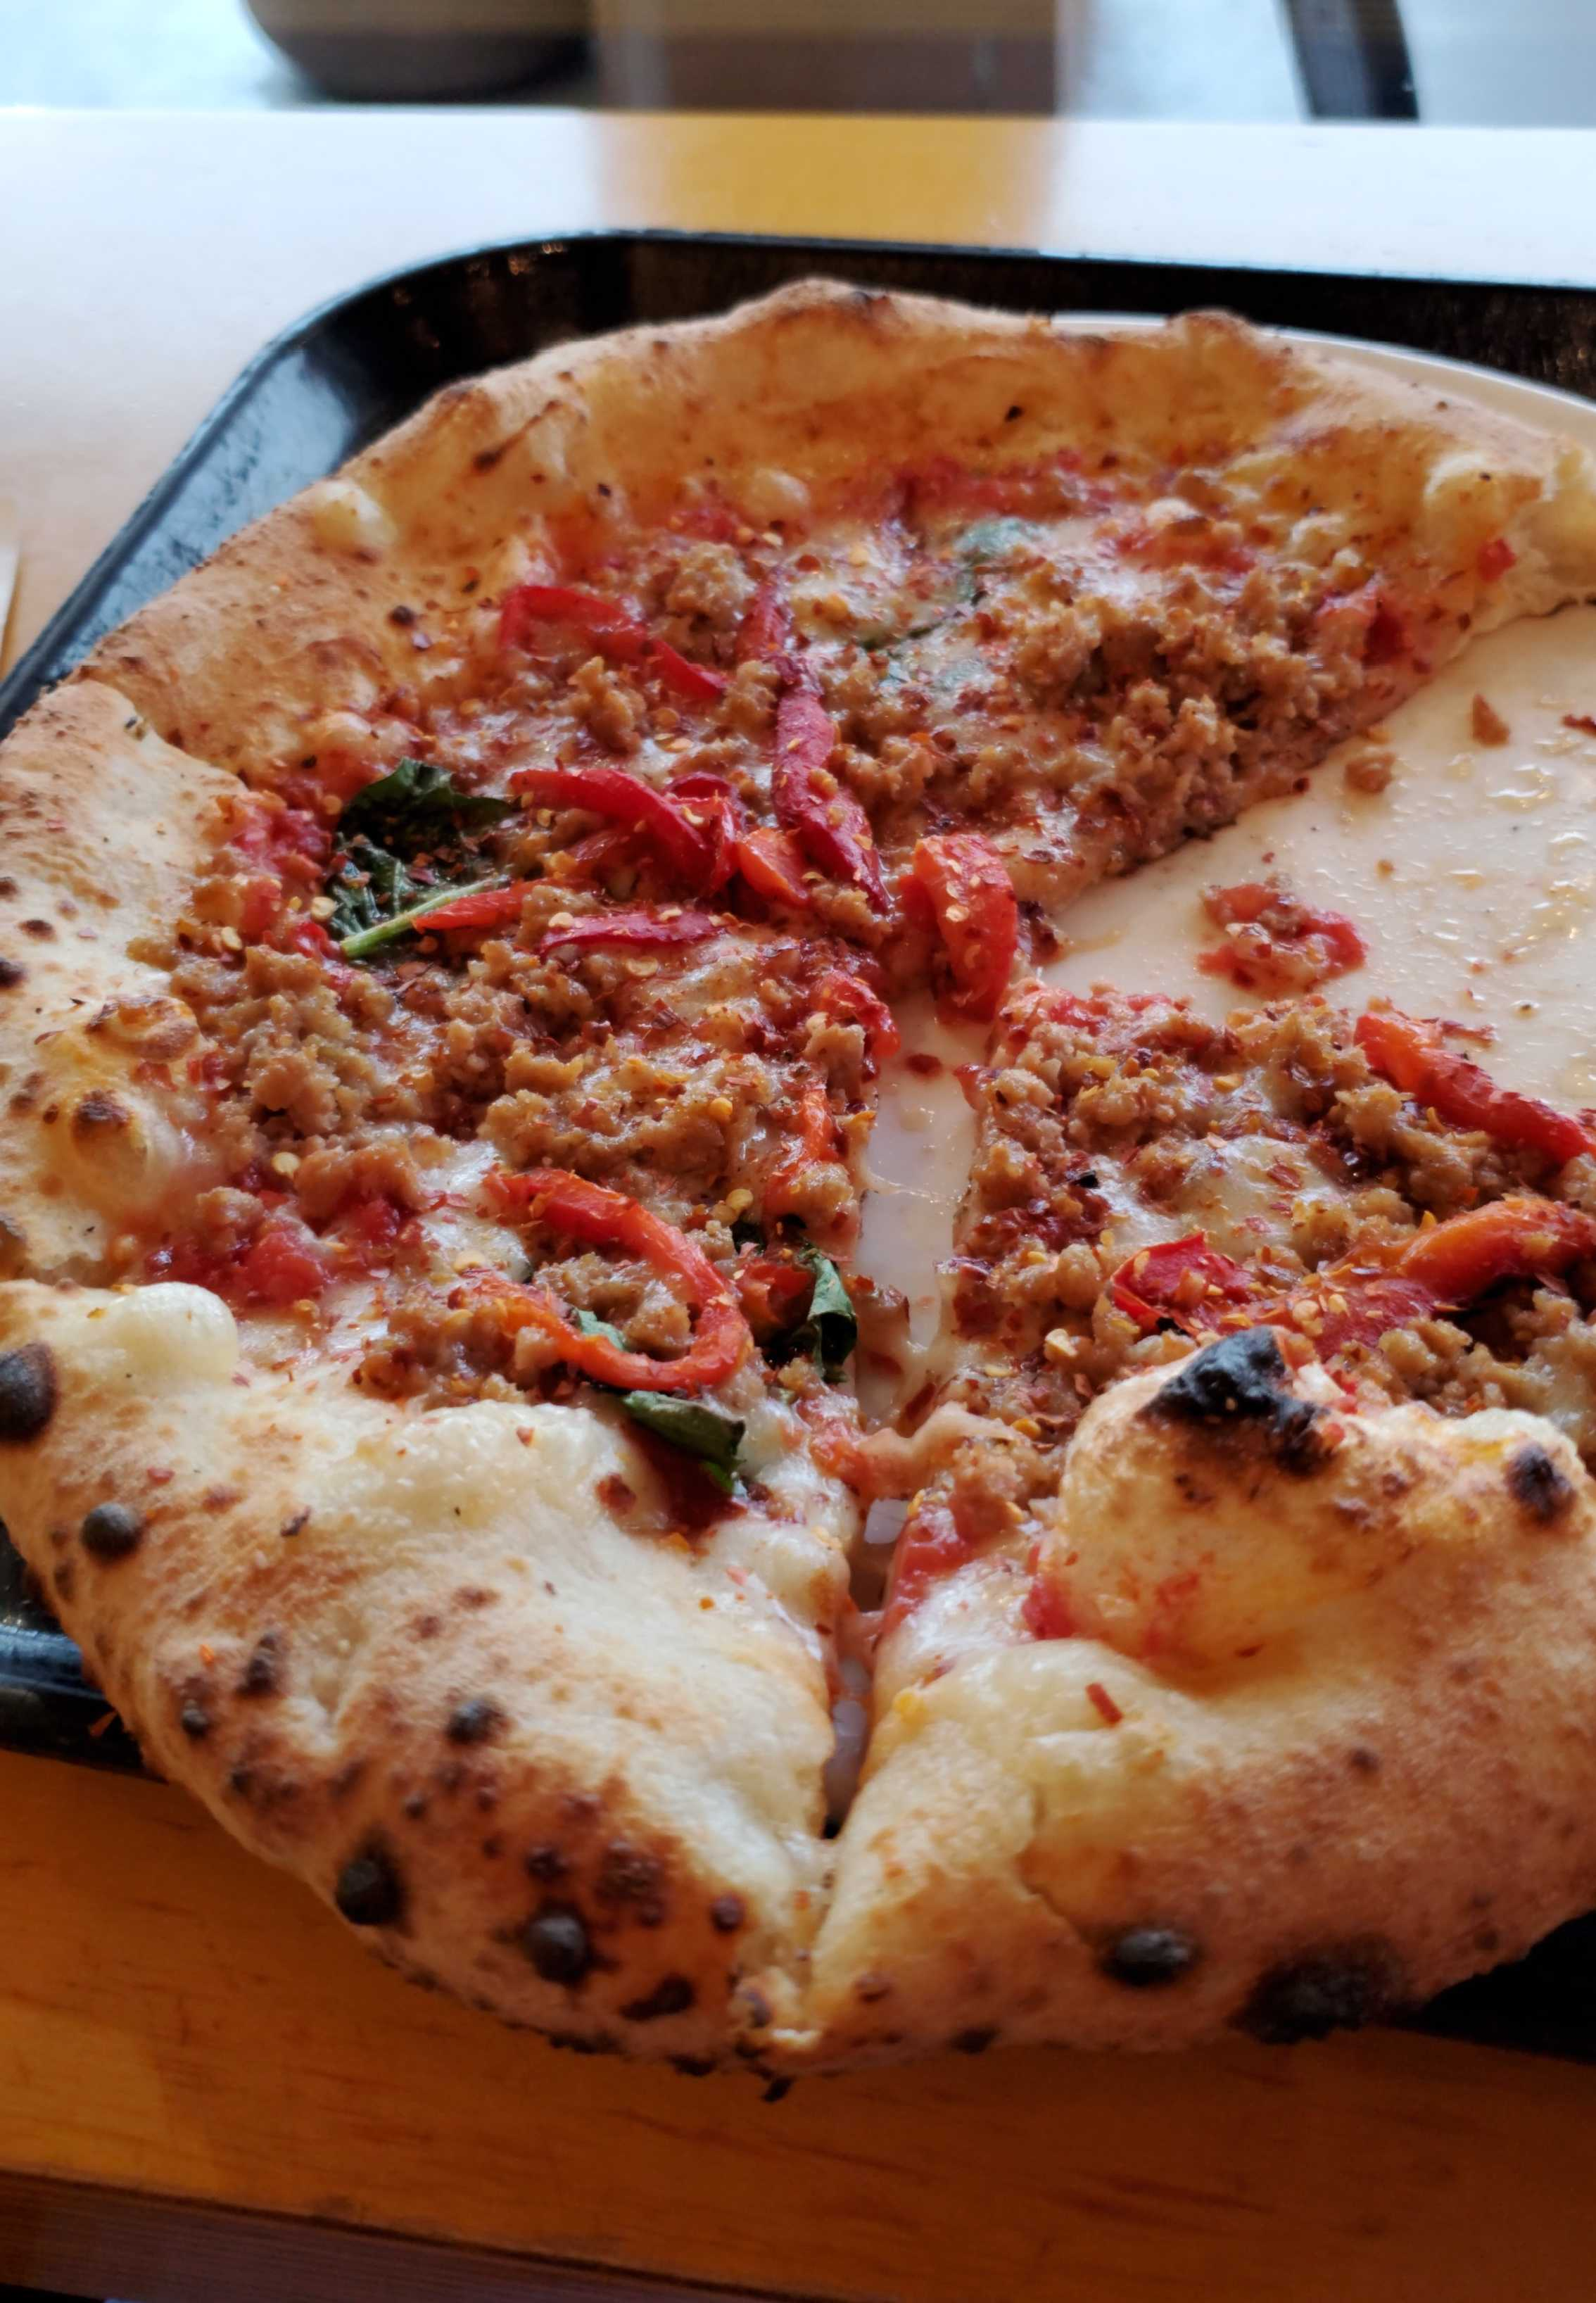 Jacqoo S Pizza Review At Punch Neapolitan Pizza Lake Street One Bite Next time ask for the pizza to be punch dry. one bite app